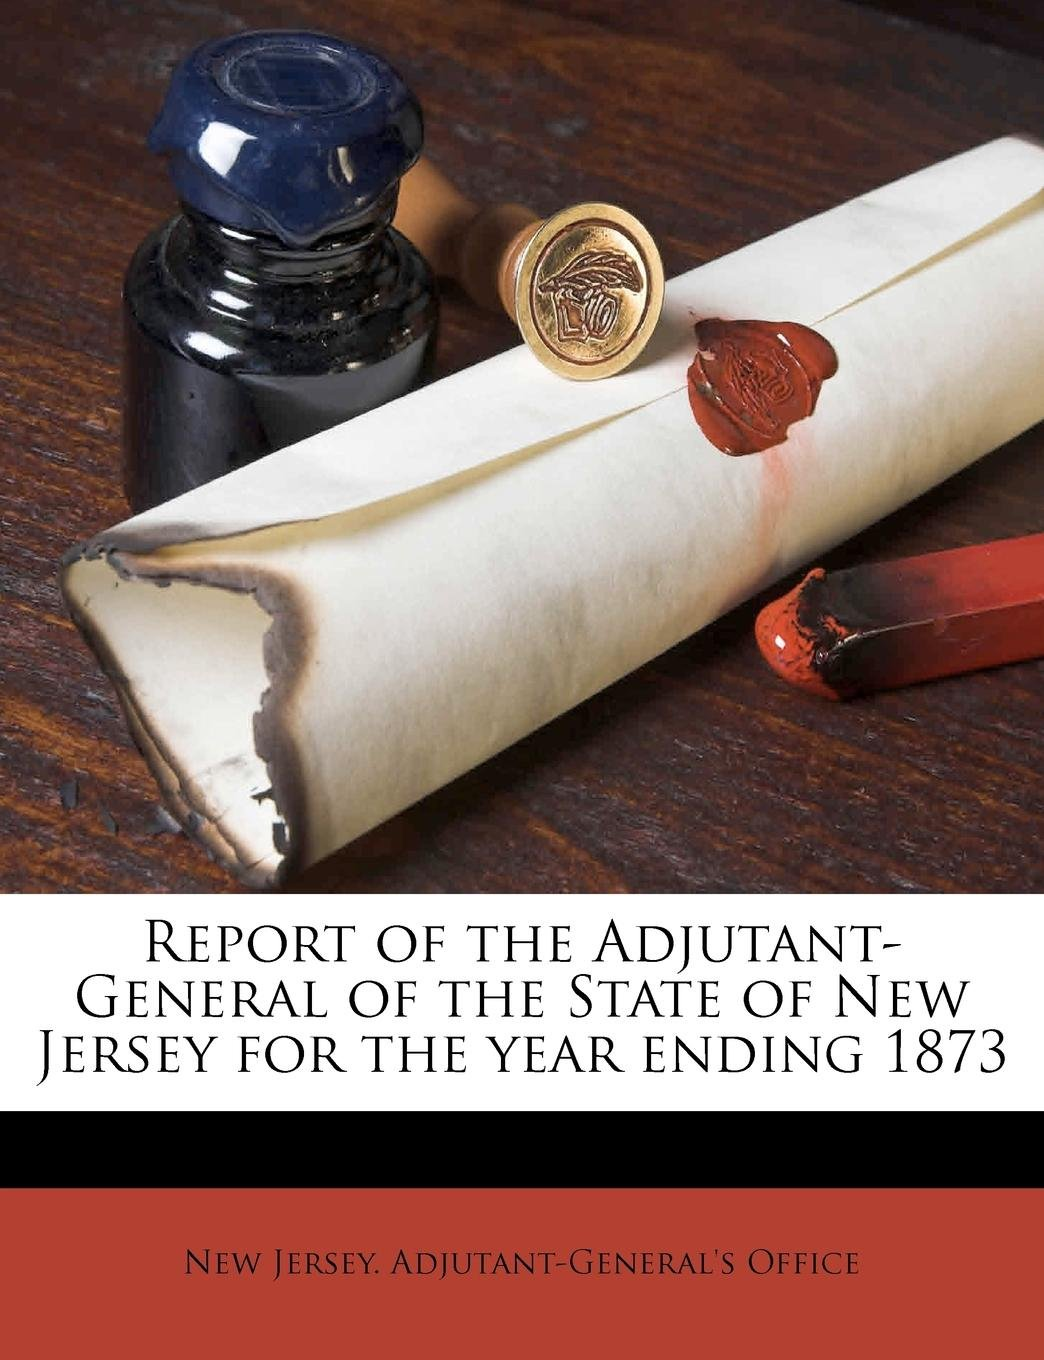 Download Report of the Adjutant-General of the State of New Jersey for the year ending 1873 ebook